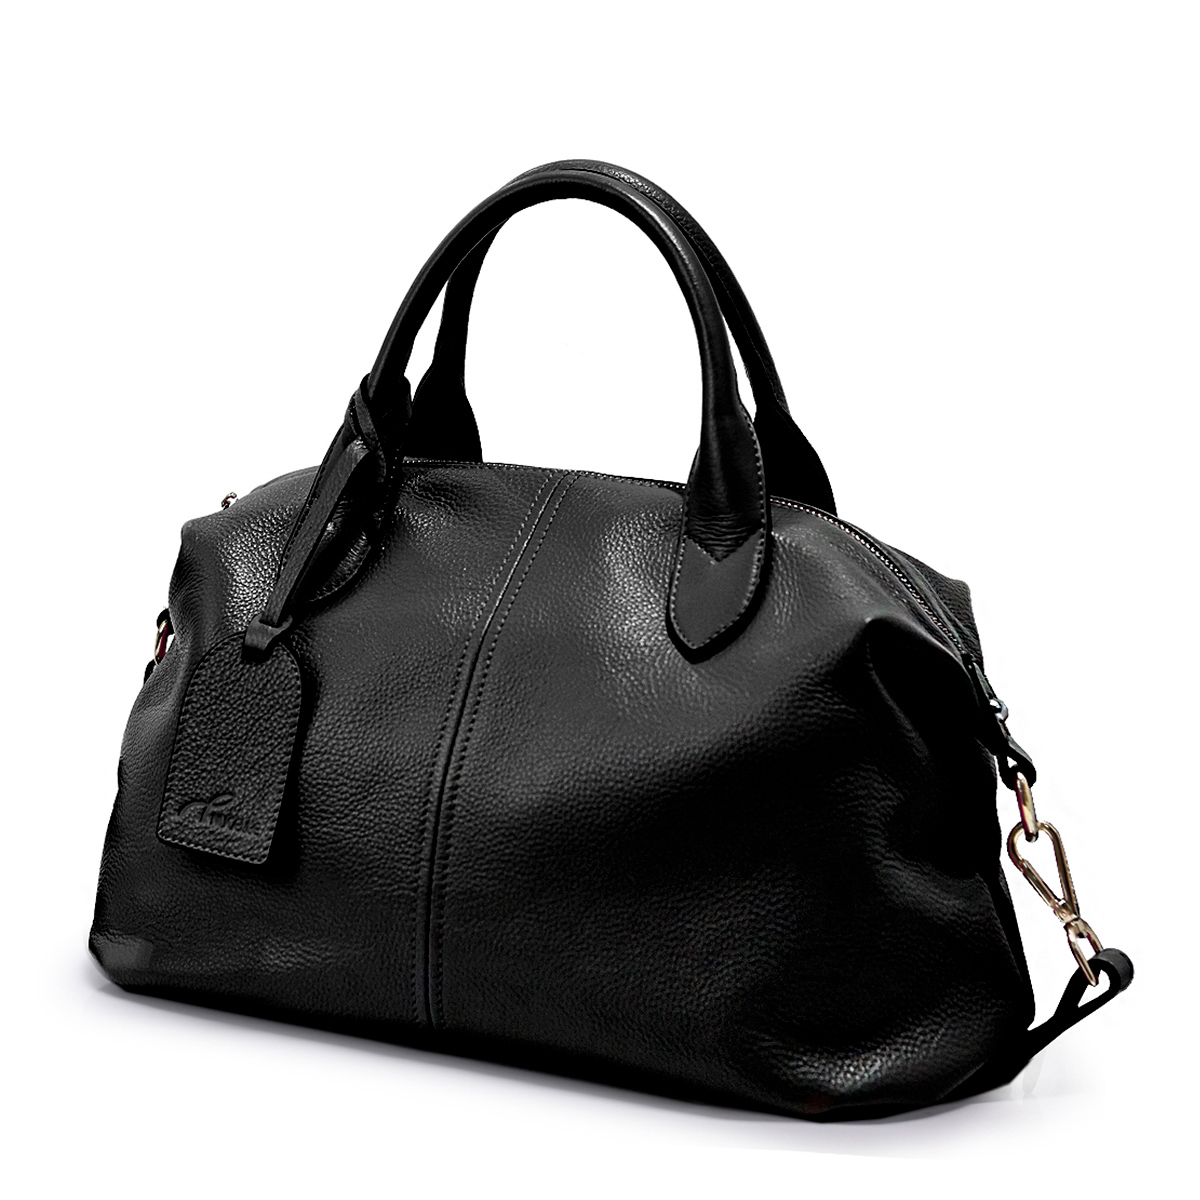 wholesale handbags from bagtreeok,enjoy best price